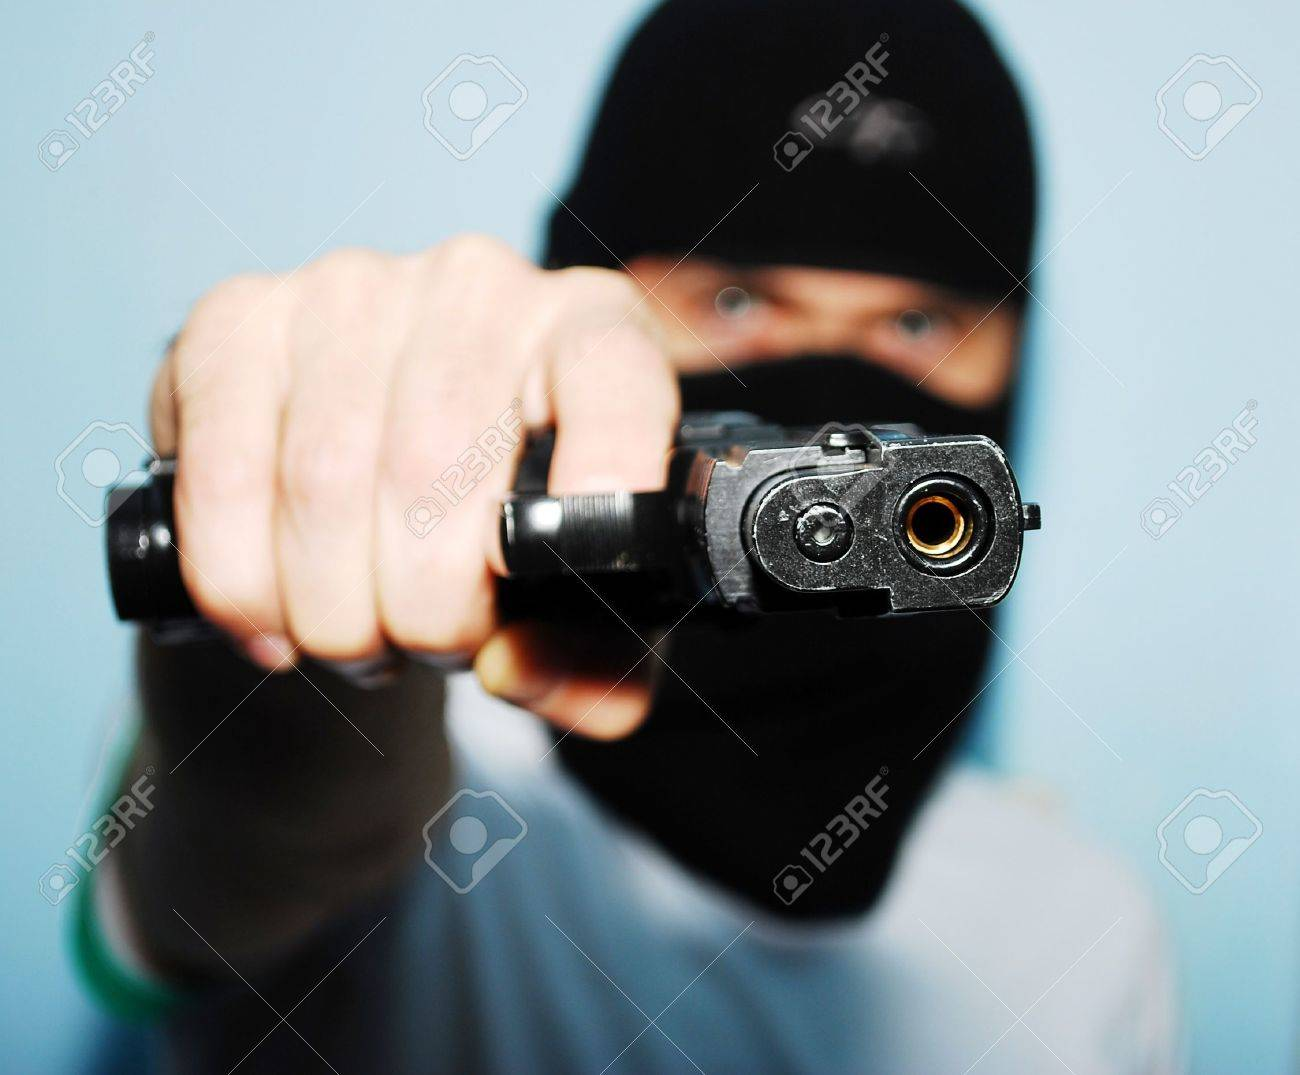 Young man holding up a gun with the focus on his gun - 8029937